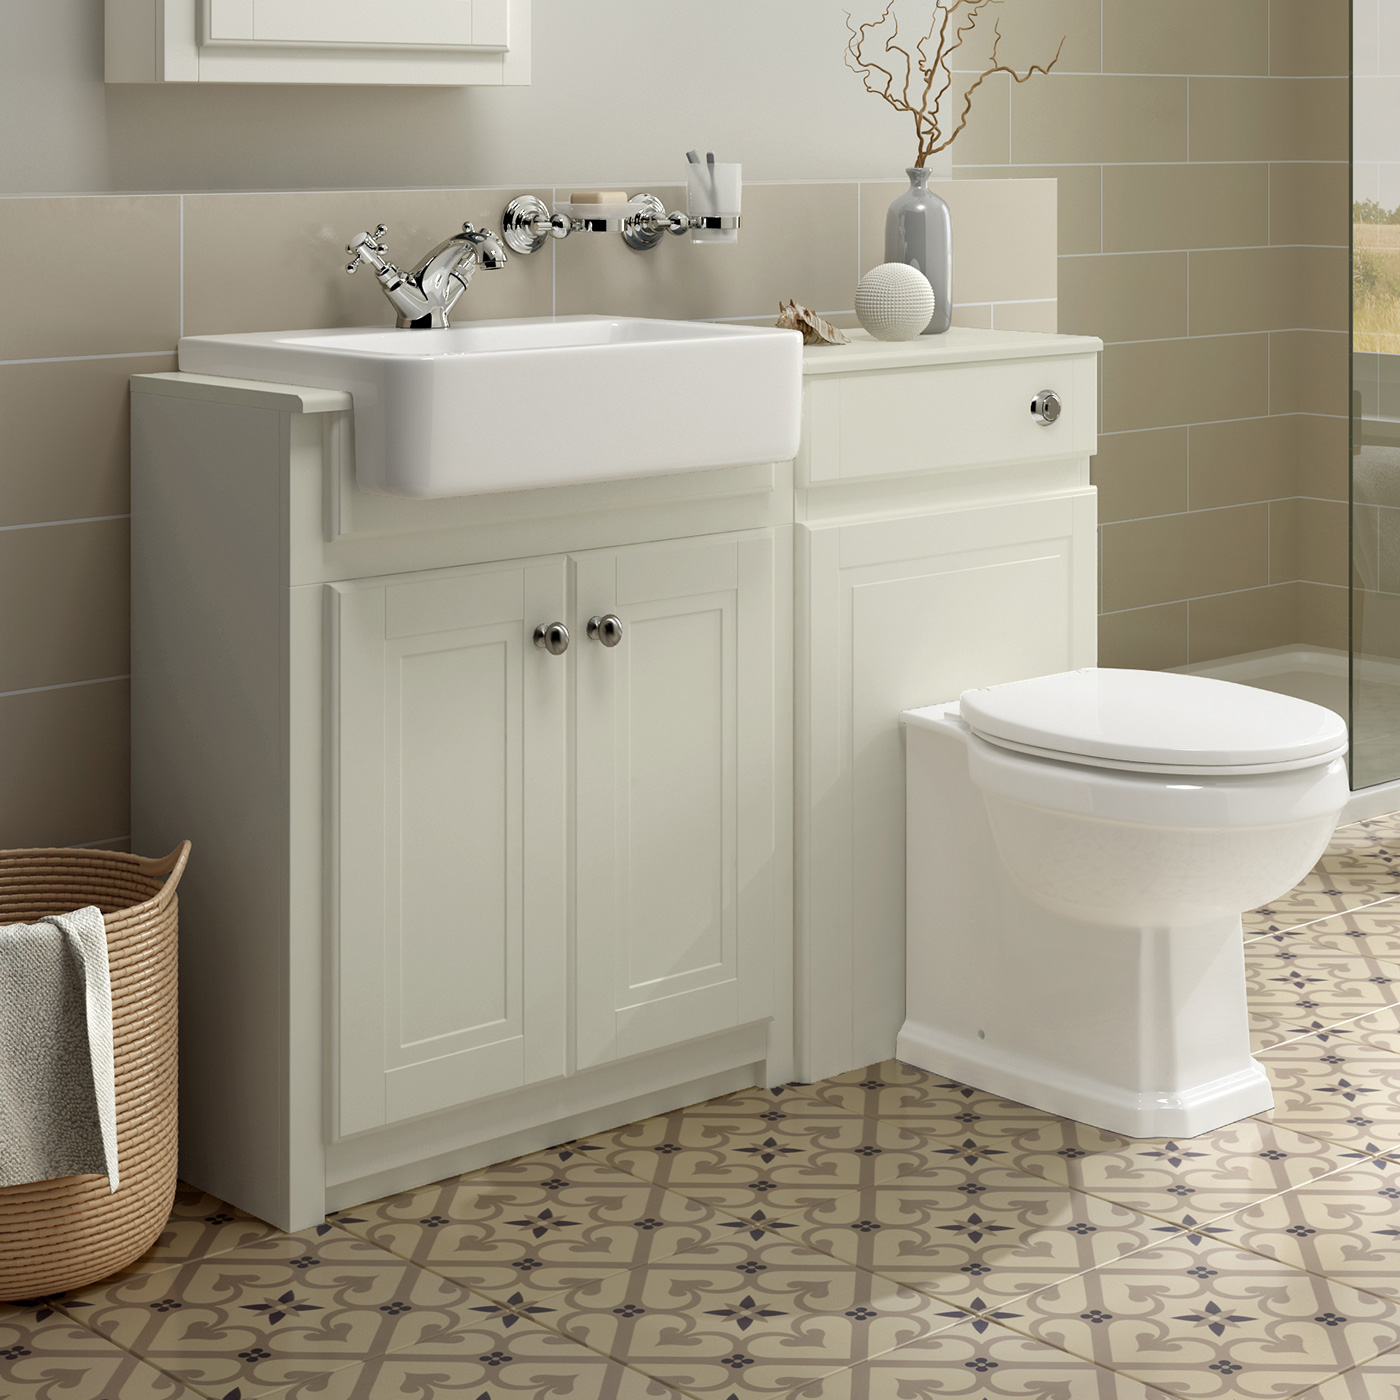 Traditional combined bathroom furniture sink basin vanity - Combination bathroom vanity units ...